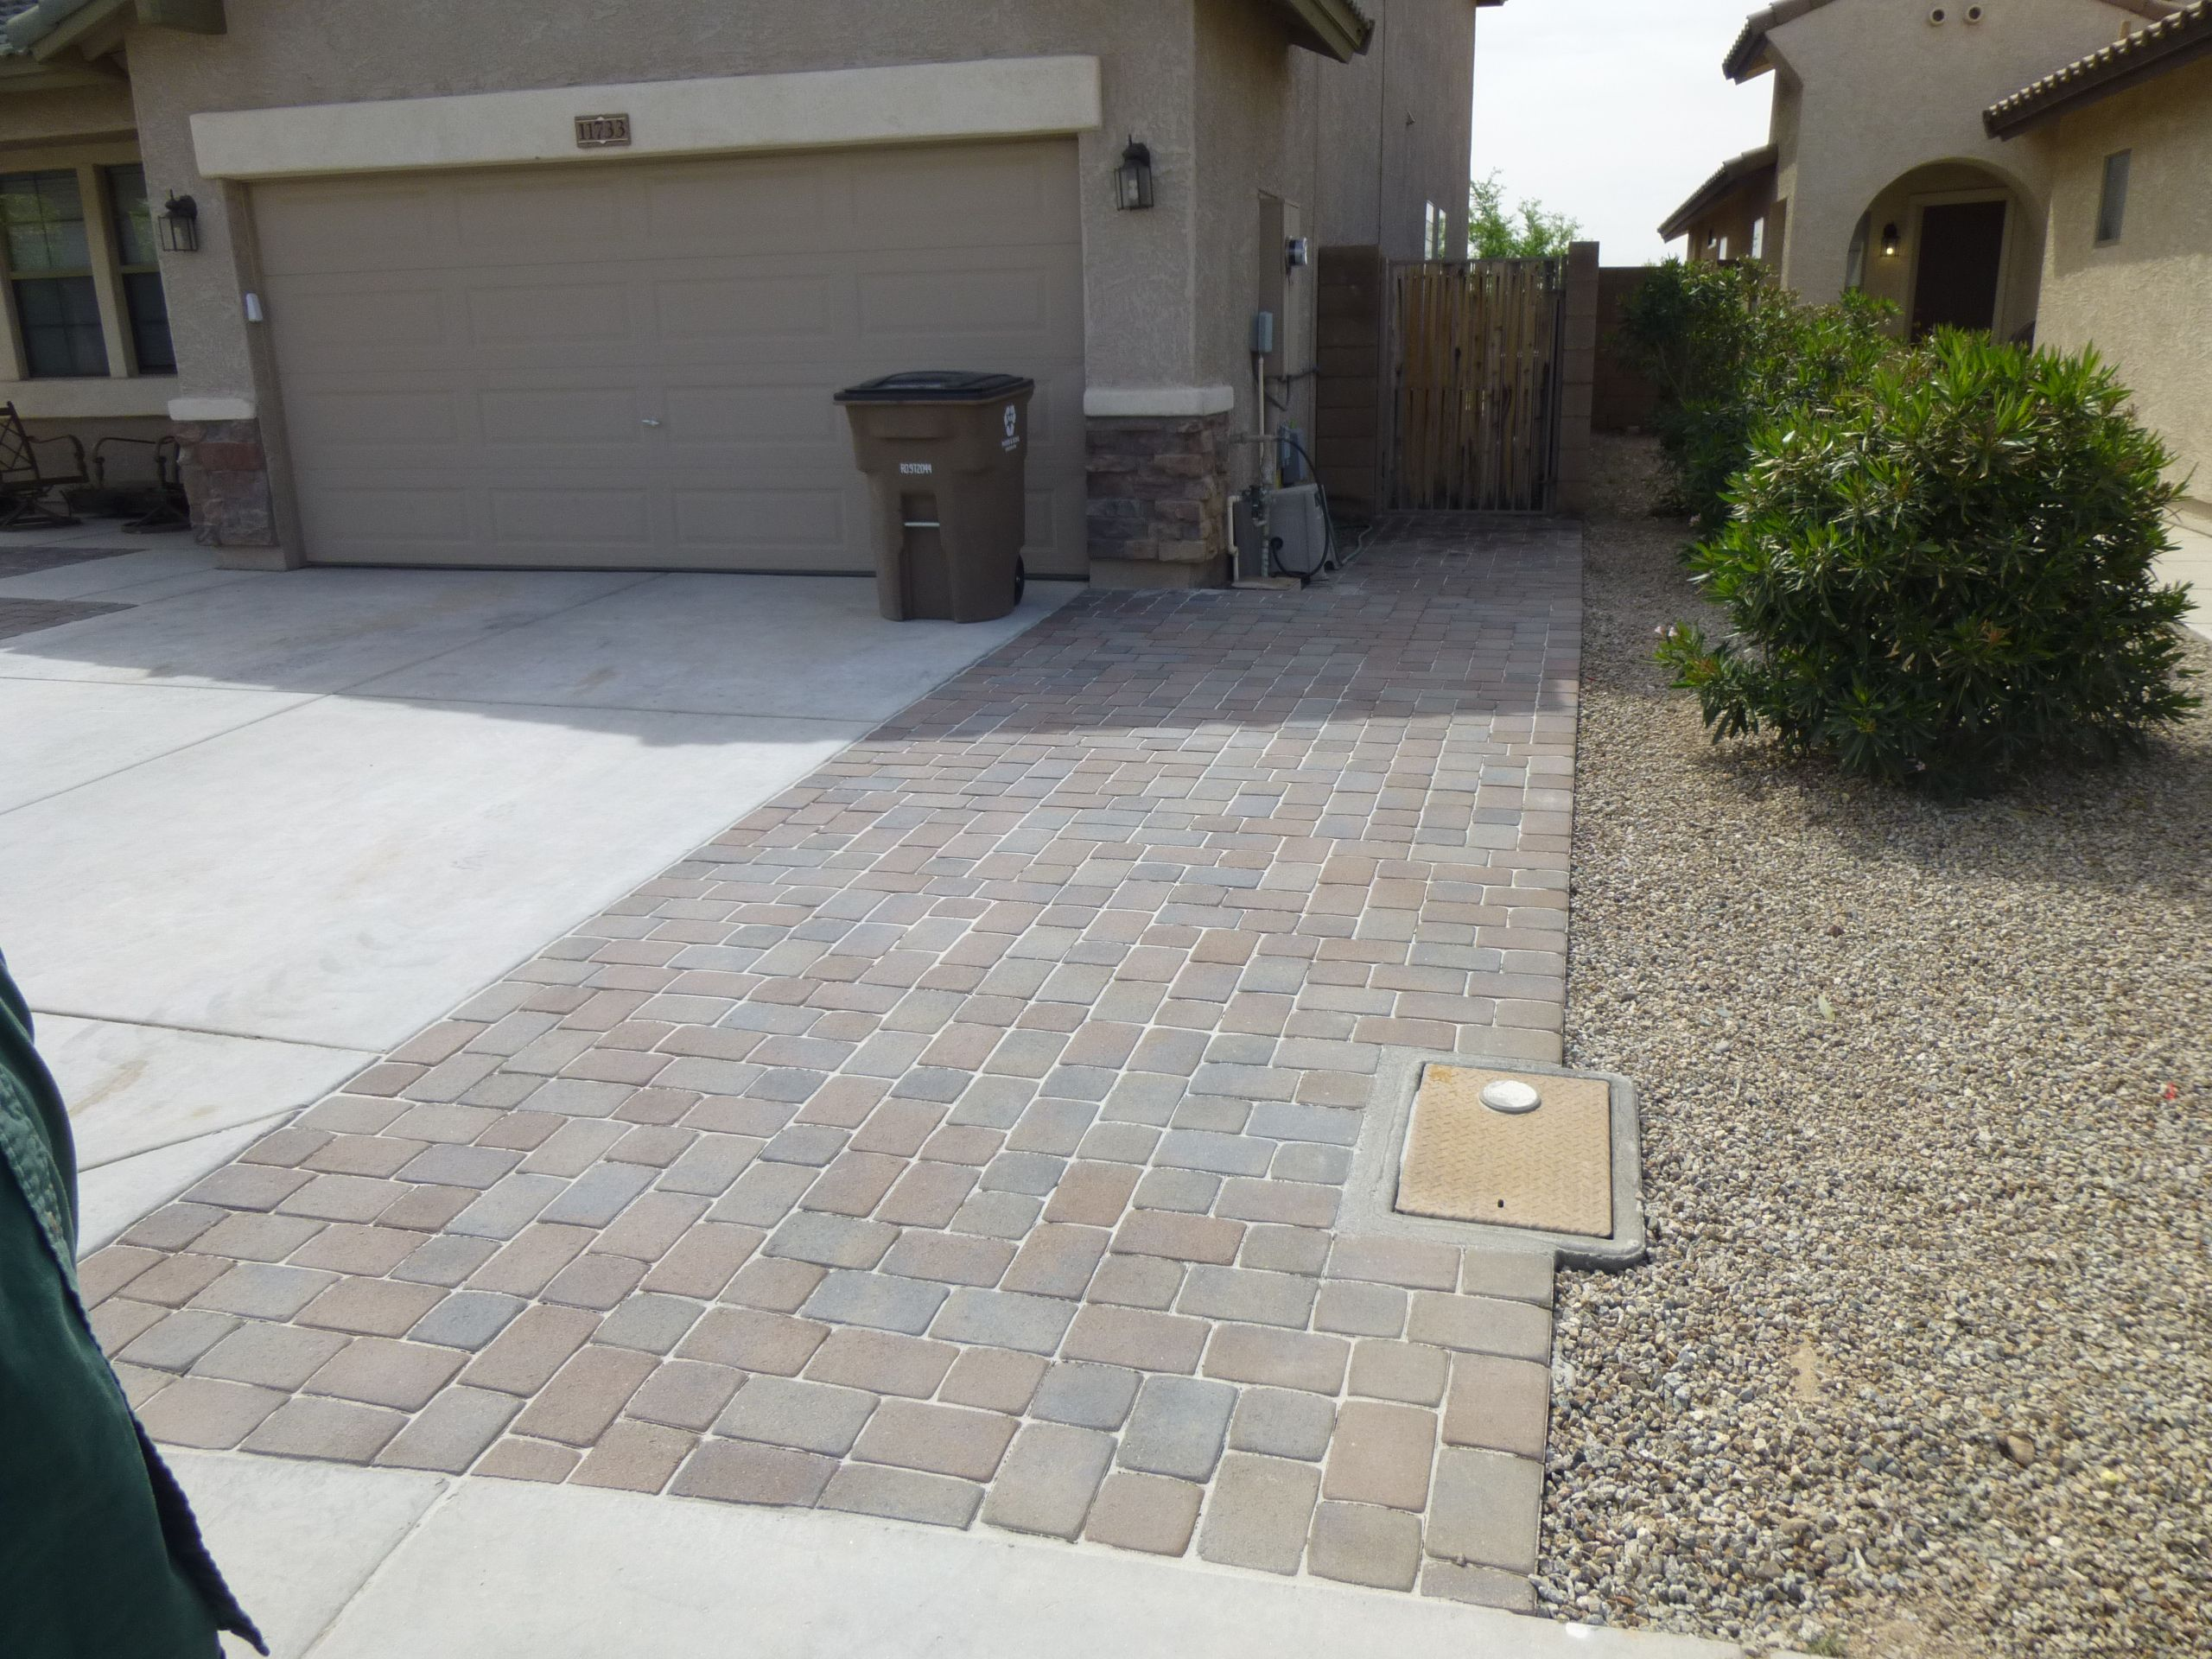 Paver driveway extension call us for free estimate 623 for Garage extension cost estimate